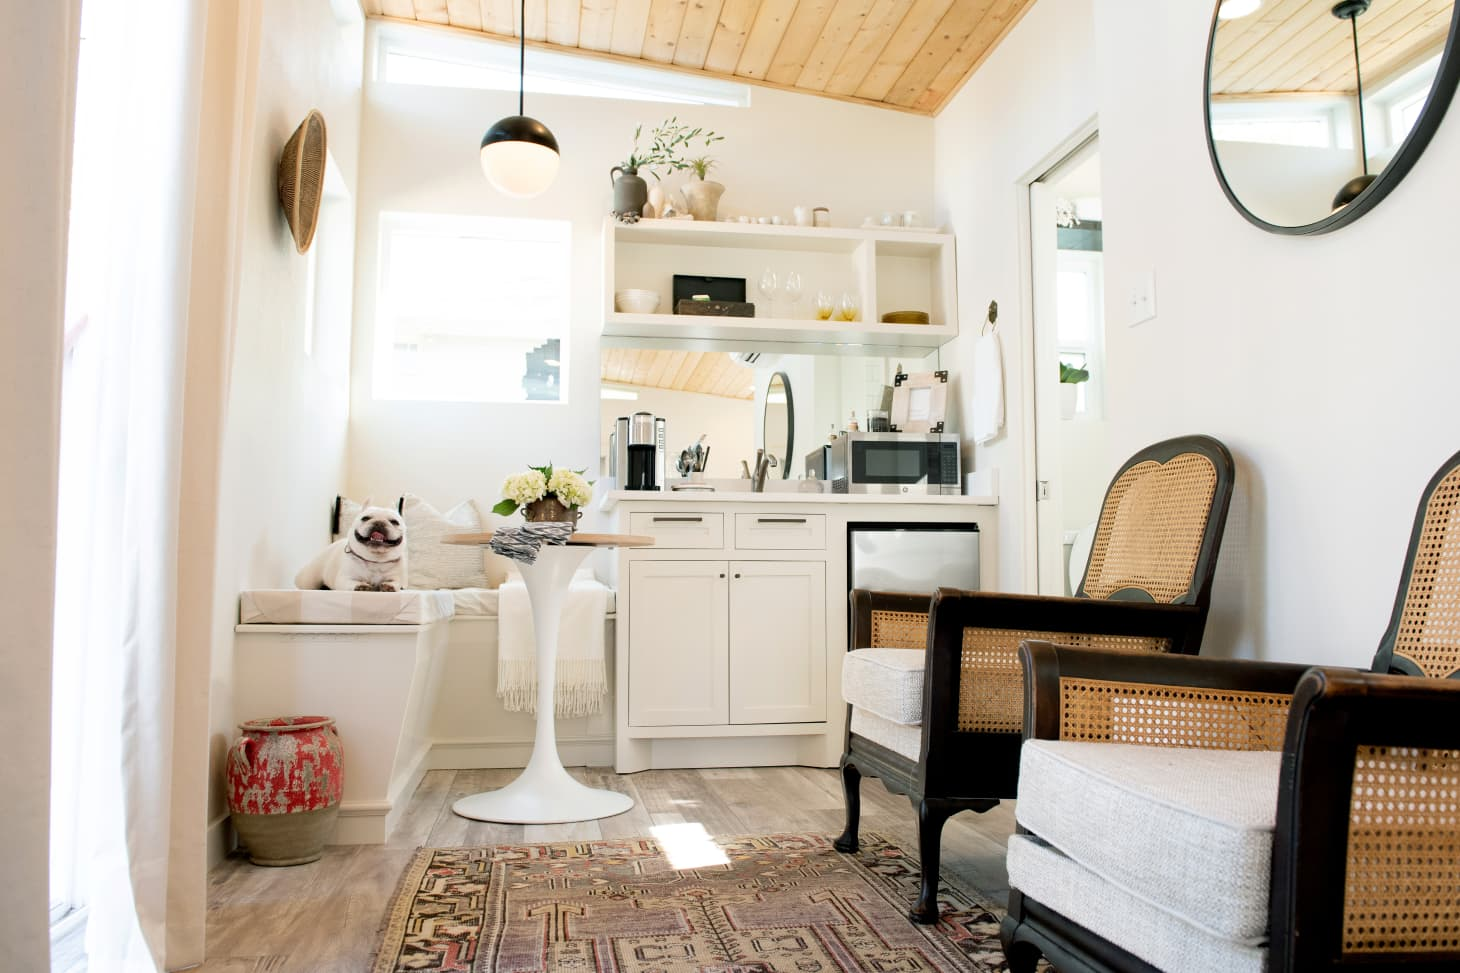 6 Major Decorating Tips From Tiny House Owners | Apartment ...